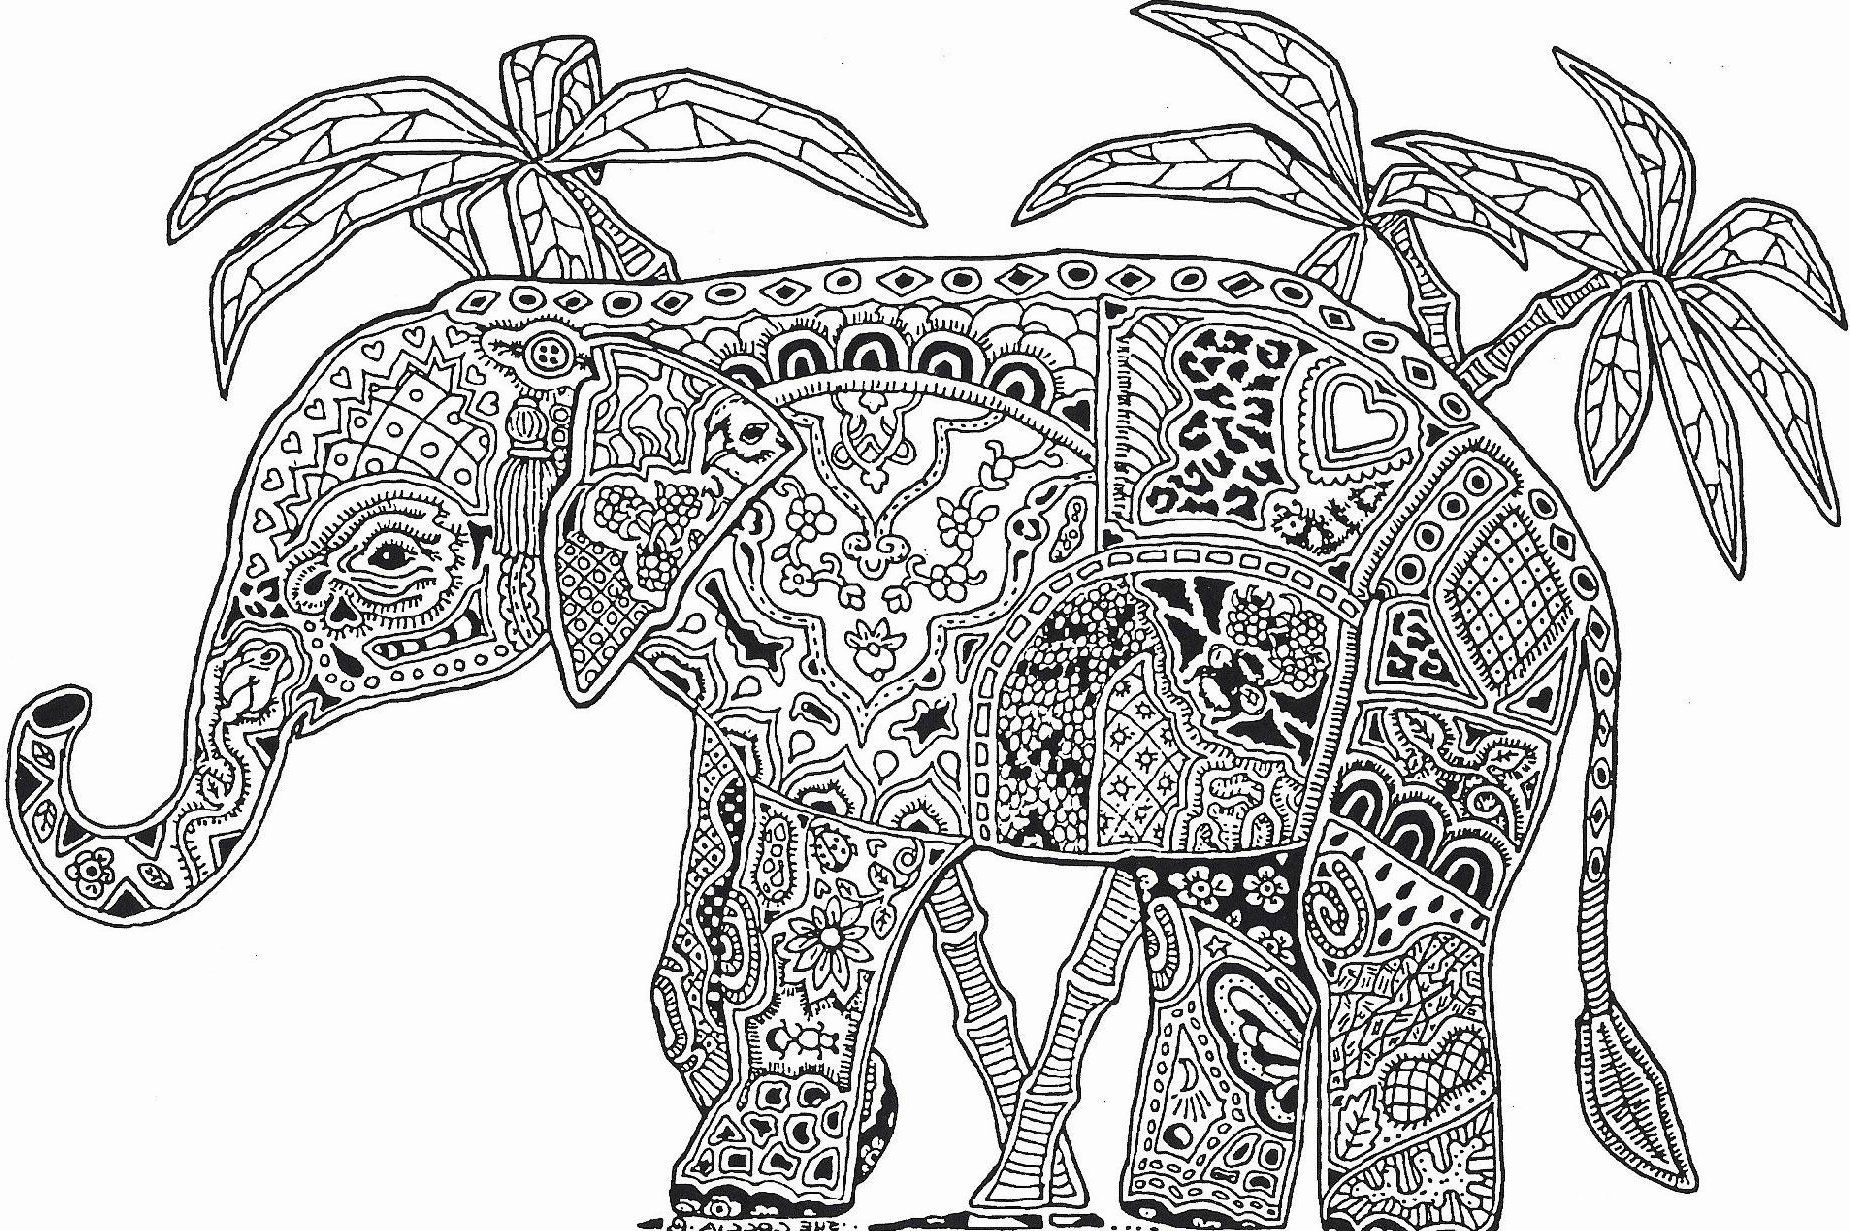 Inspirational Giraffe And Elephant Coloring Pages